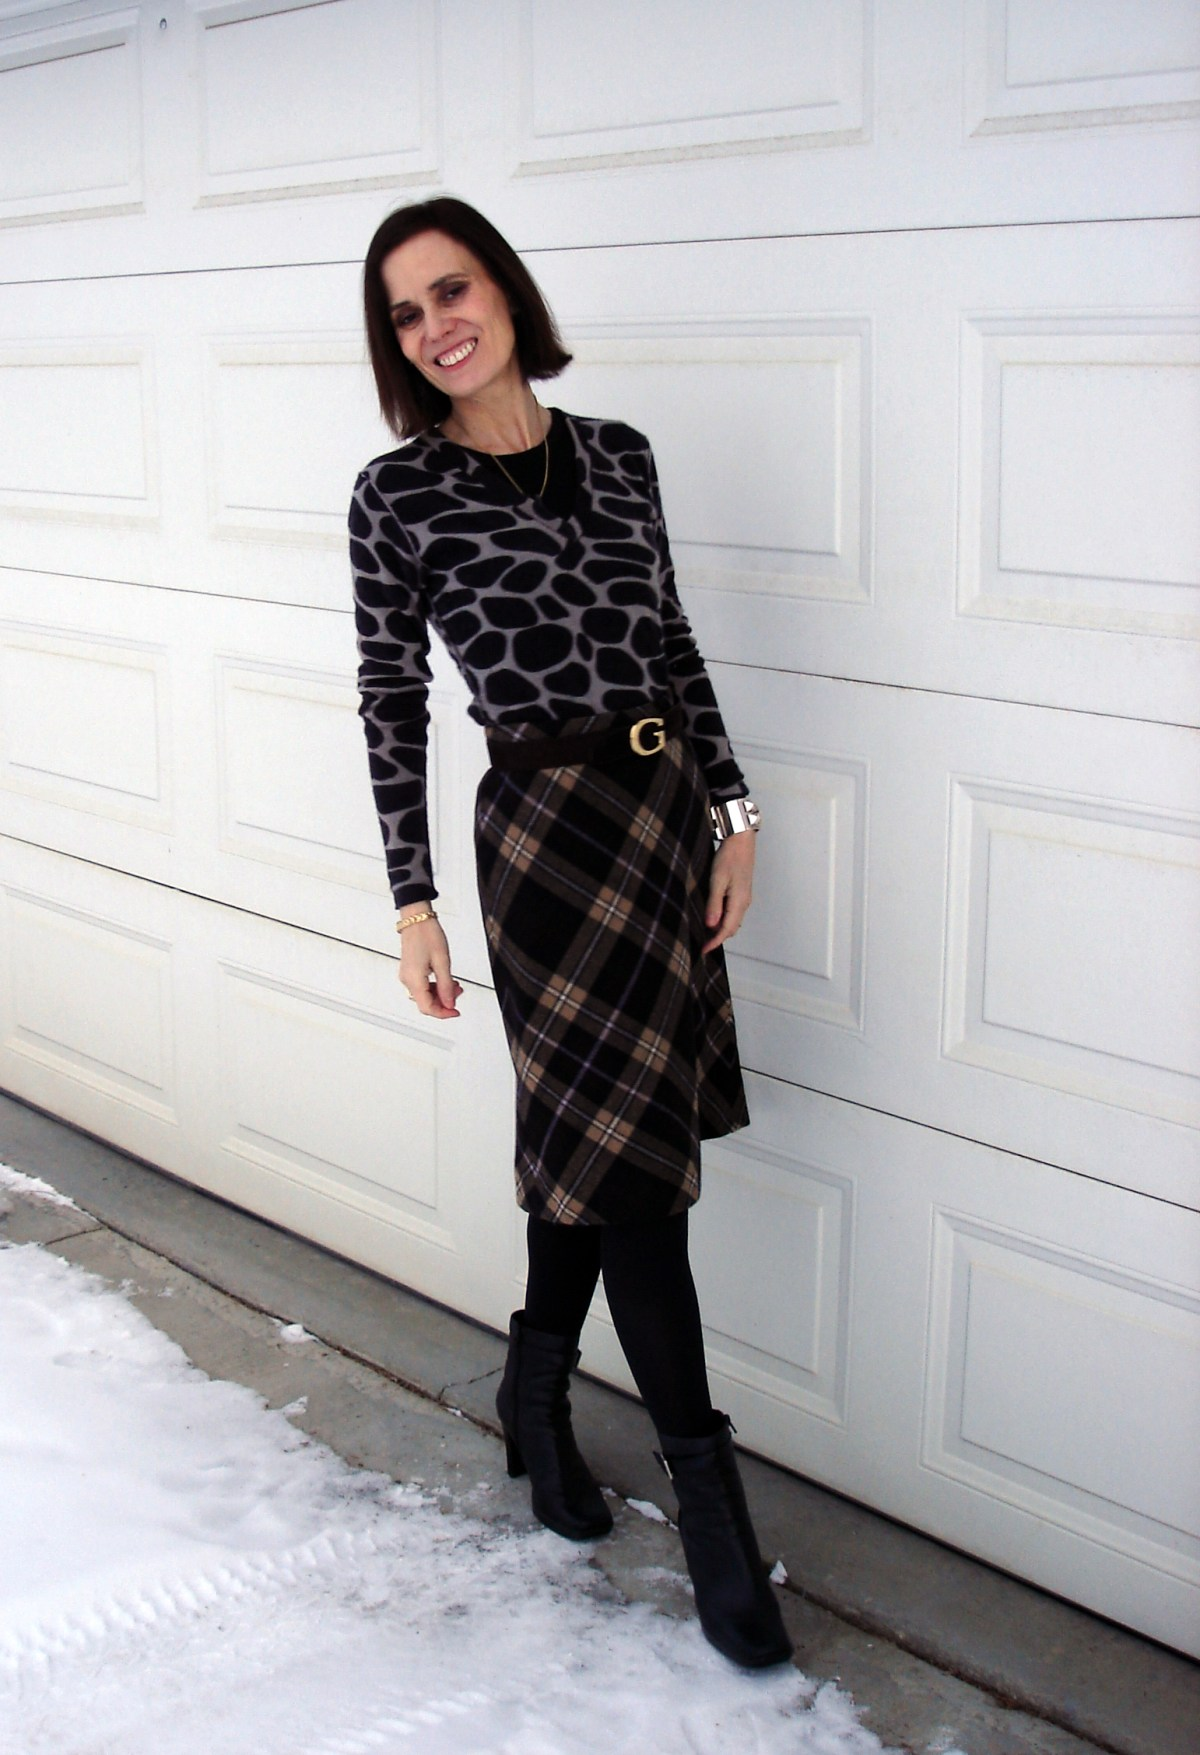 outfit with girafe print and plaid in neutral colors